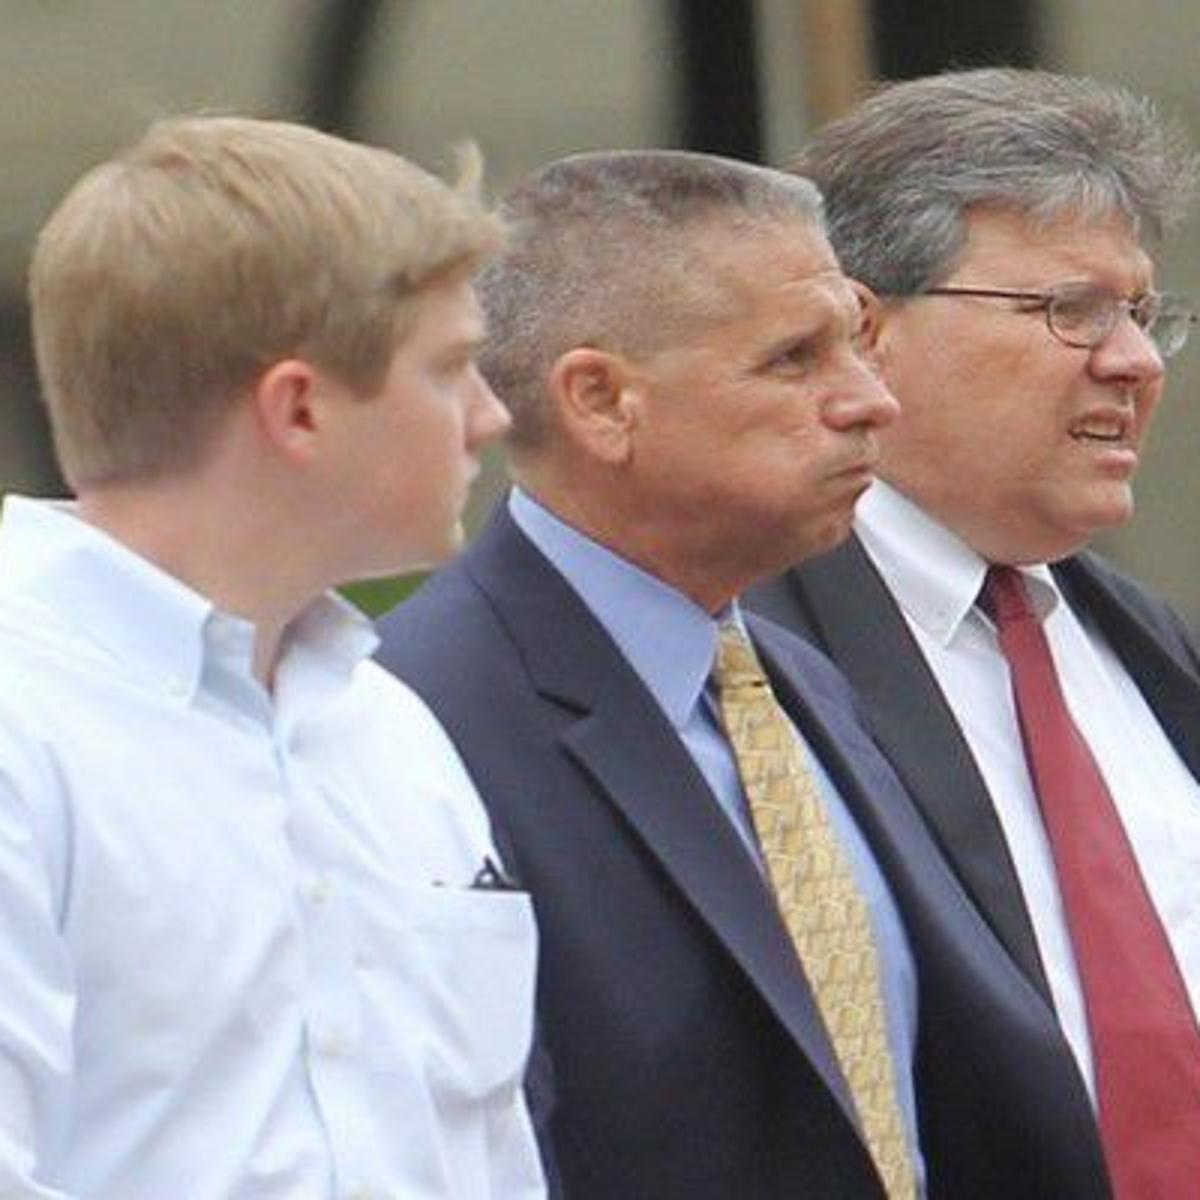 Tim Whitmer gets 3 years probation for covering up crimes in